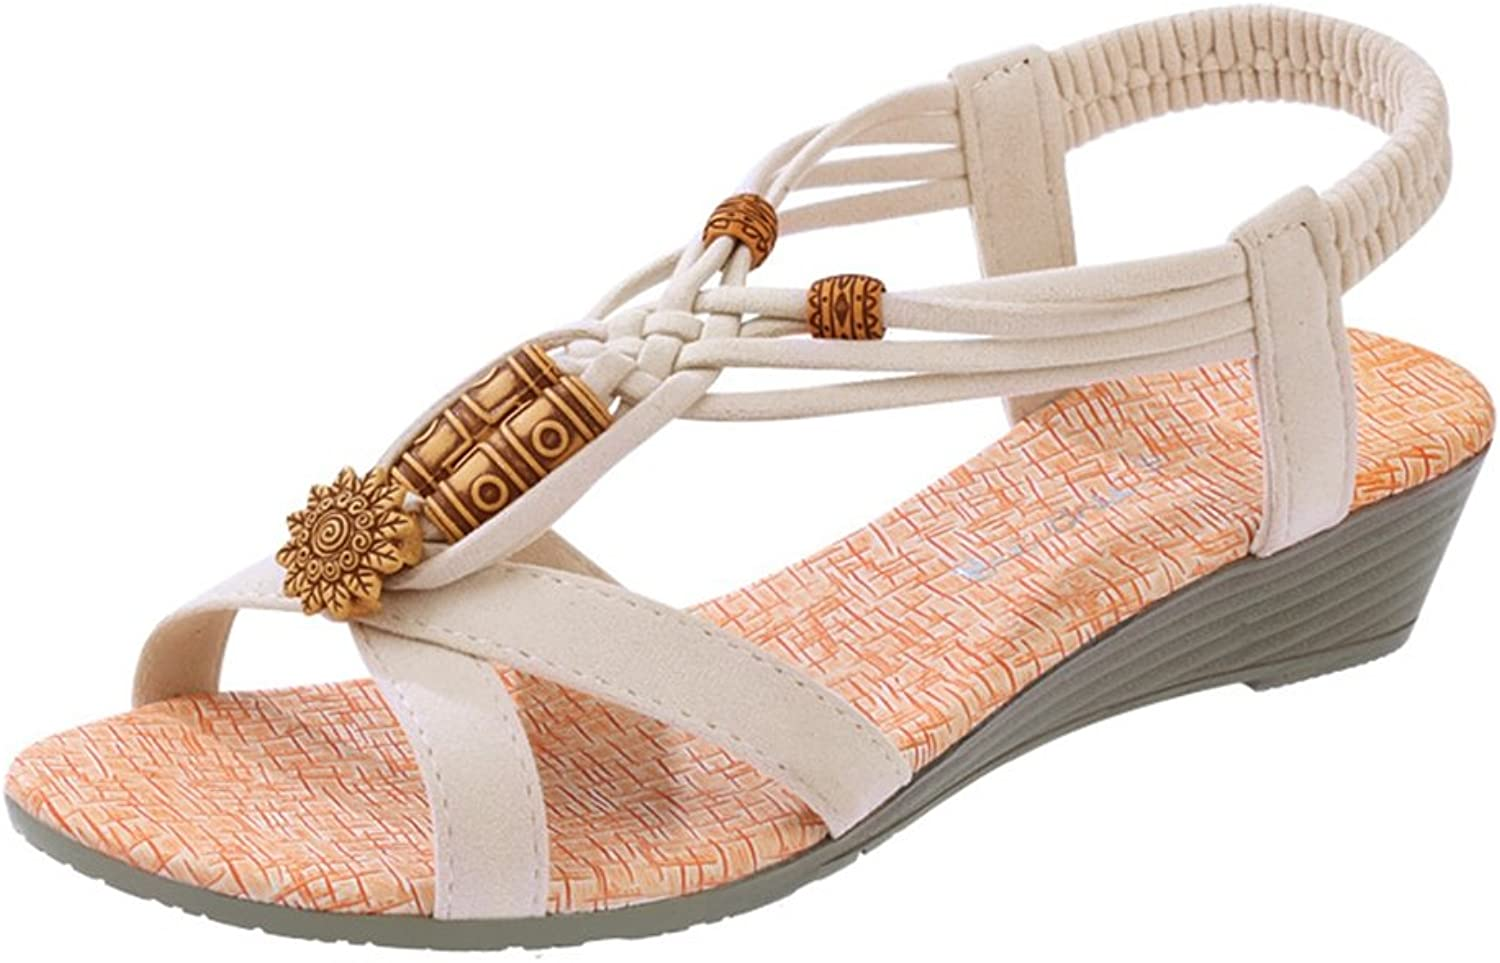 CYBLING Fashion Bohemian Wedge Sandals shoes for Women Elastic Strap shoes